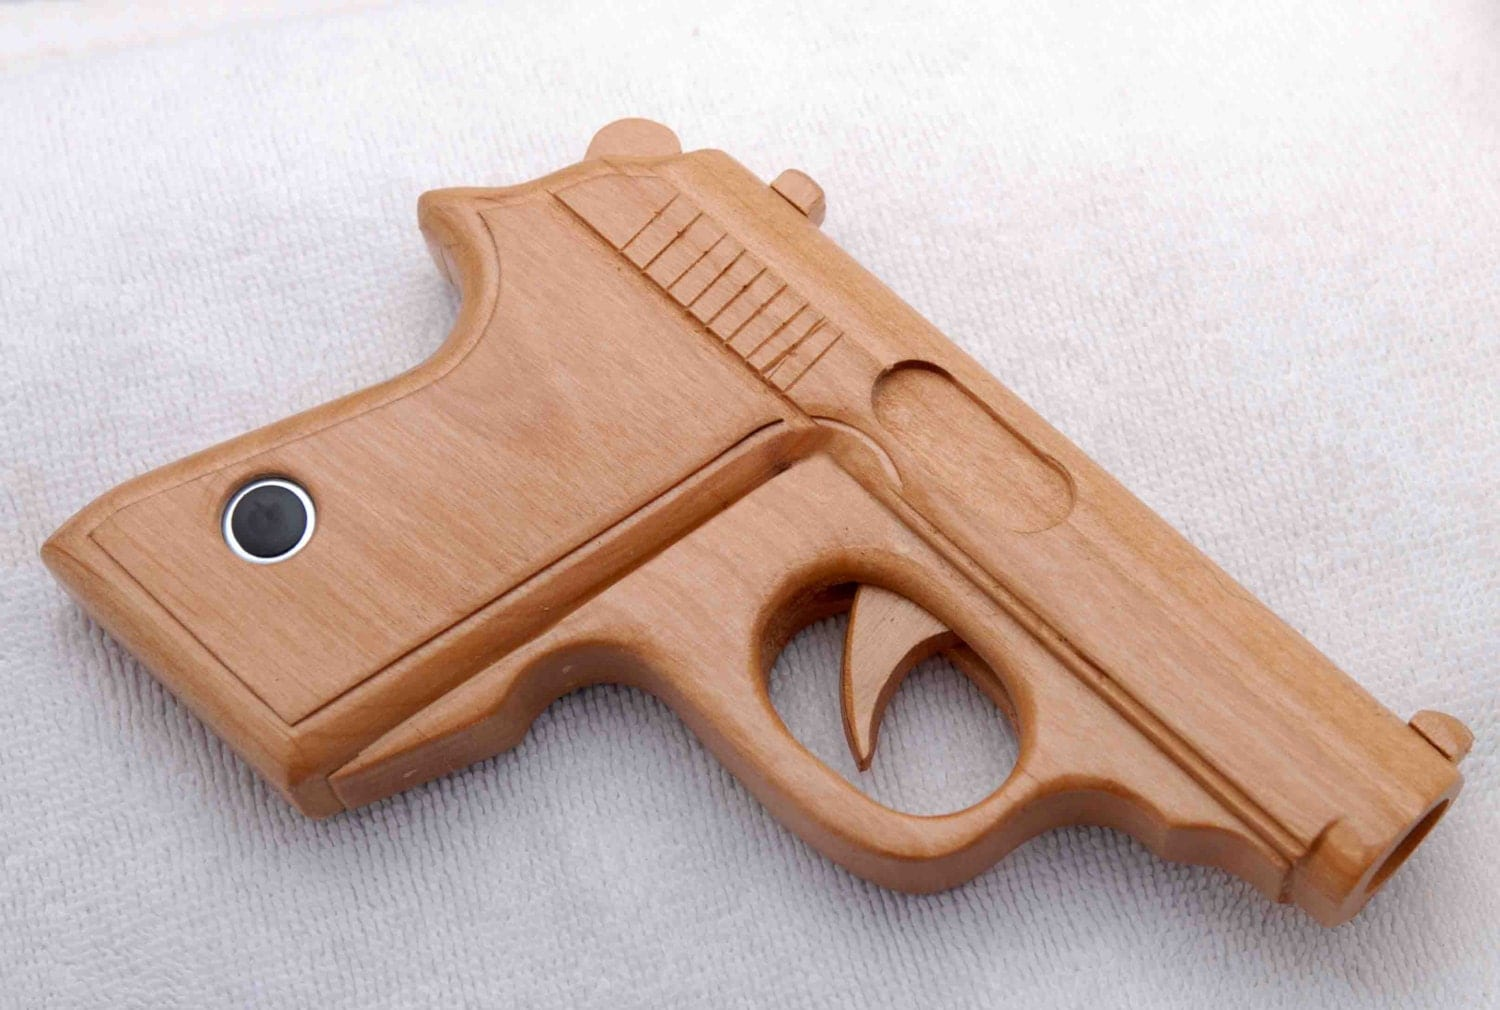 Hand-made wooden toy gun to scale Walther PPK moving trigger